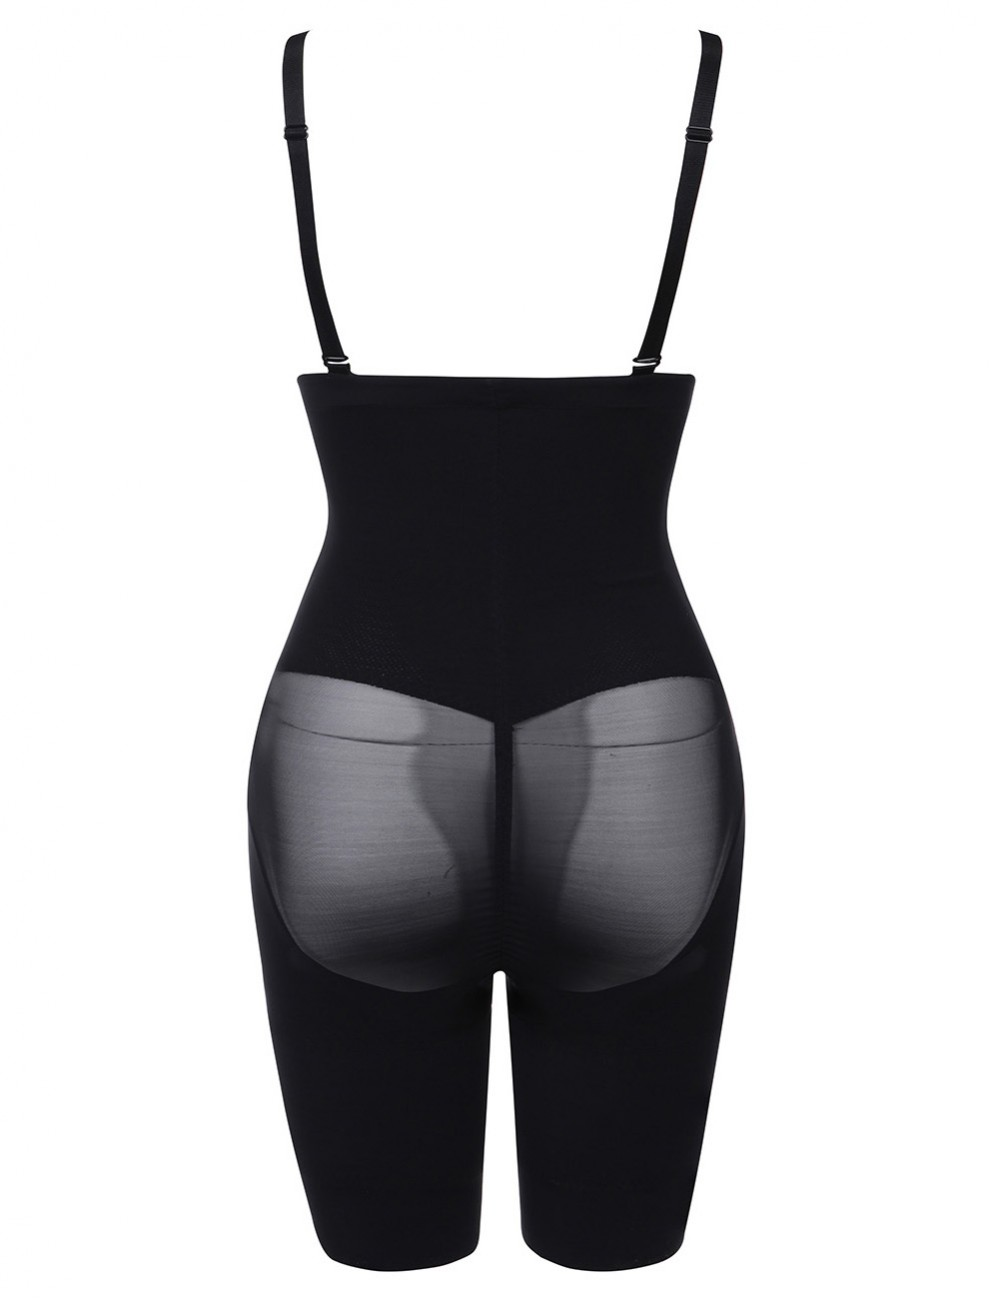 Black Butt Lift Mesh Patchwork Tight Body Shaper Plus Size Natural Shaping